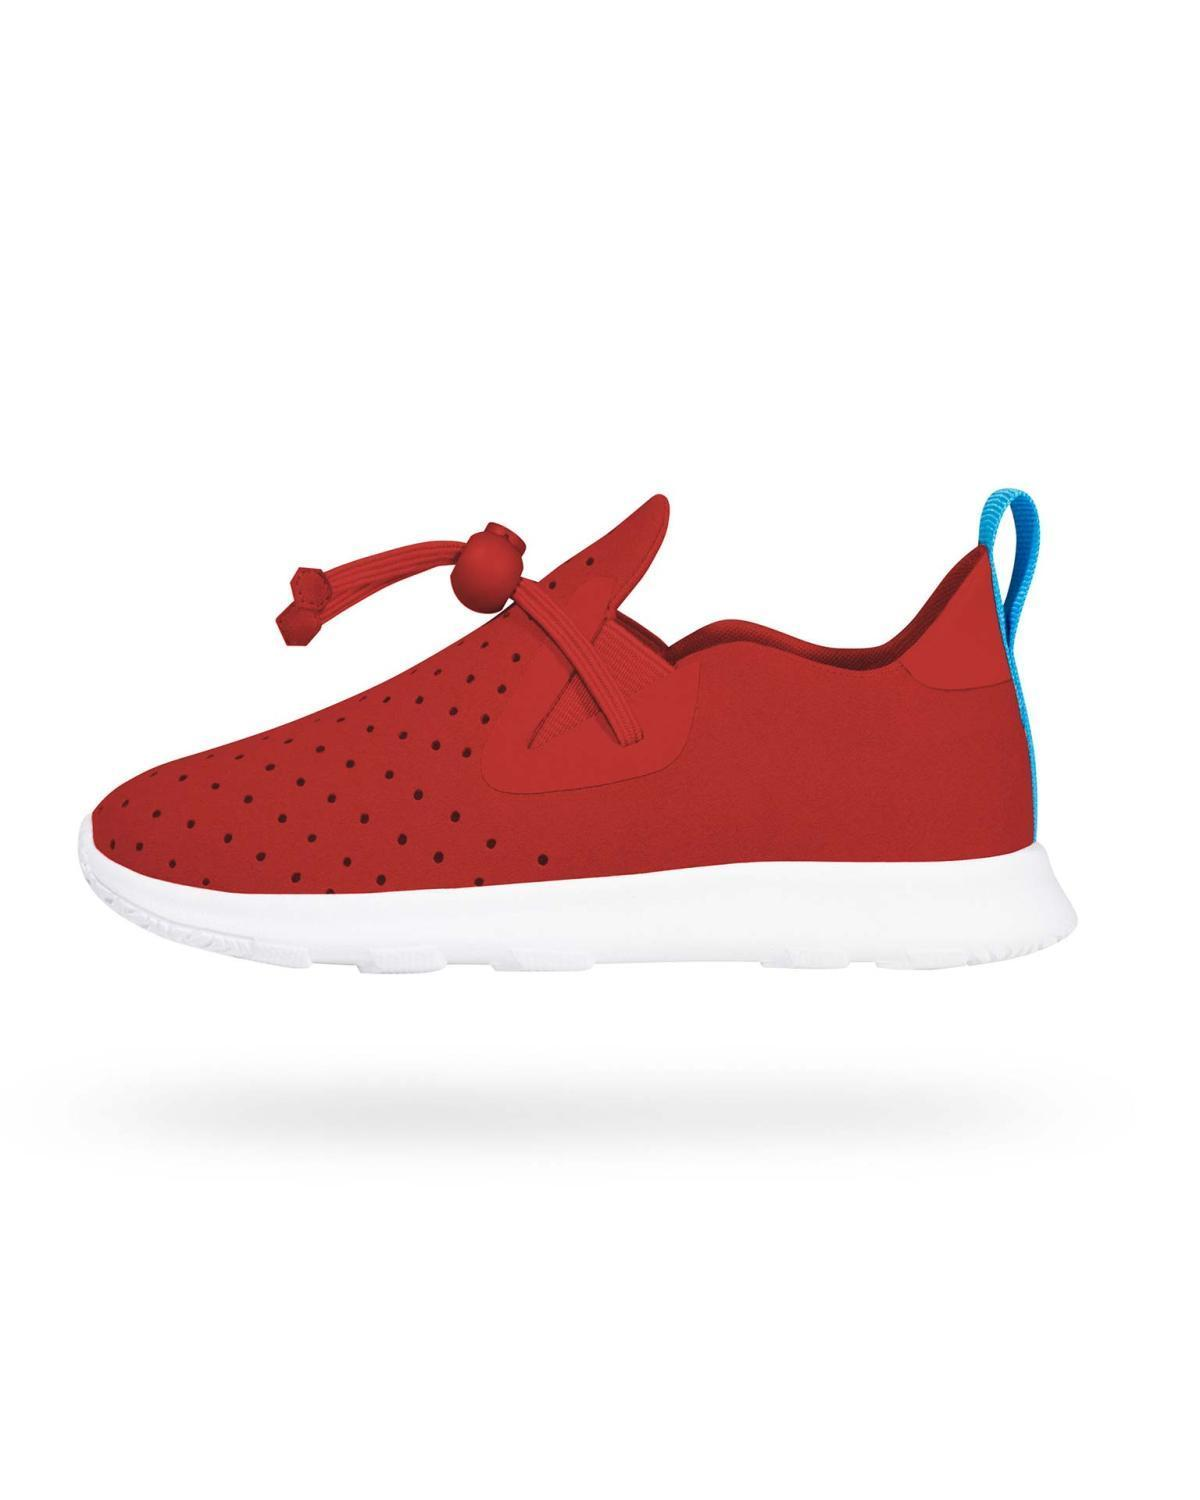 Little native shoes boy c6 Apollo Moc in Torch Red